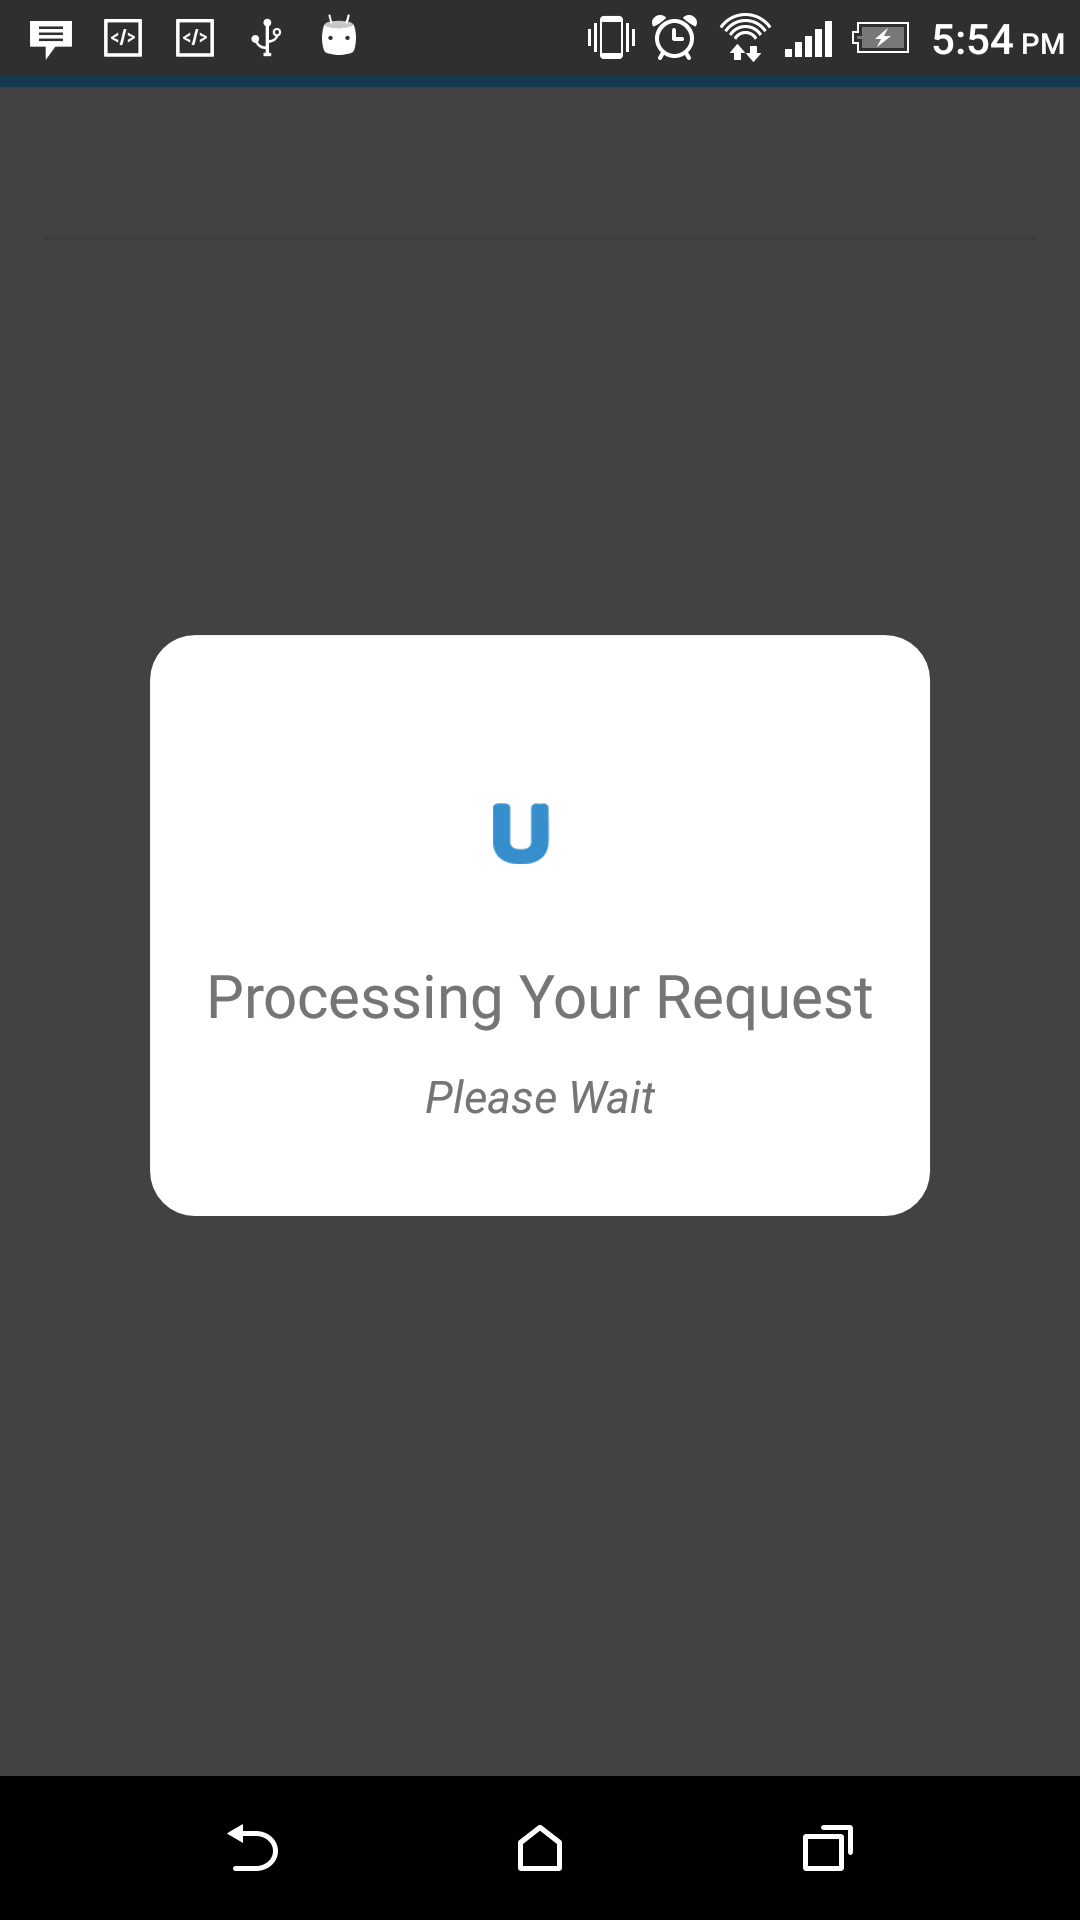 pay_processing_request